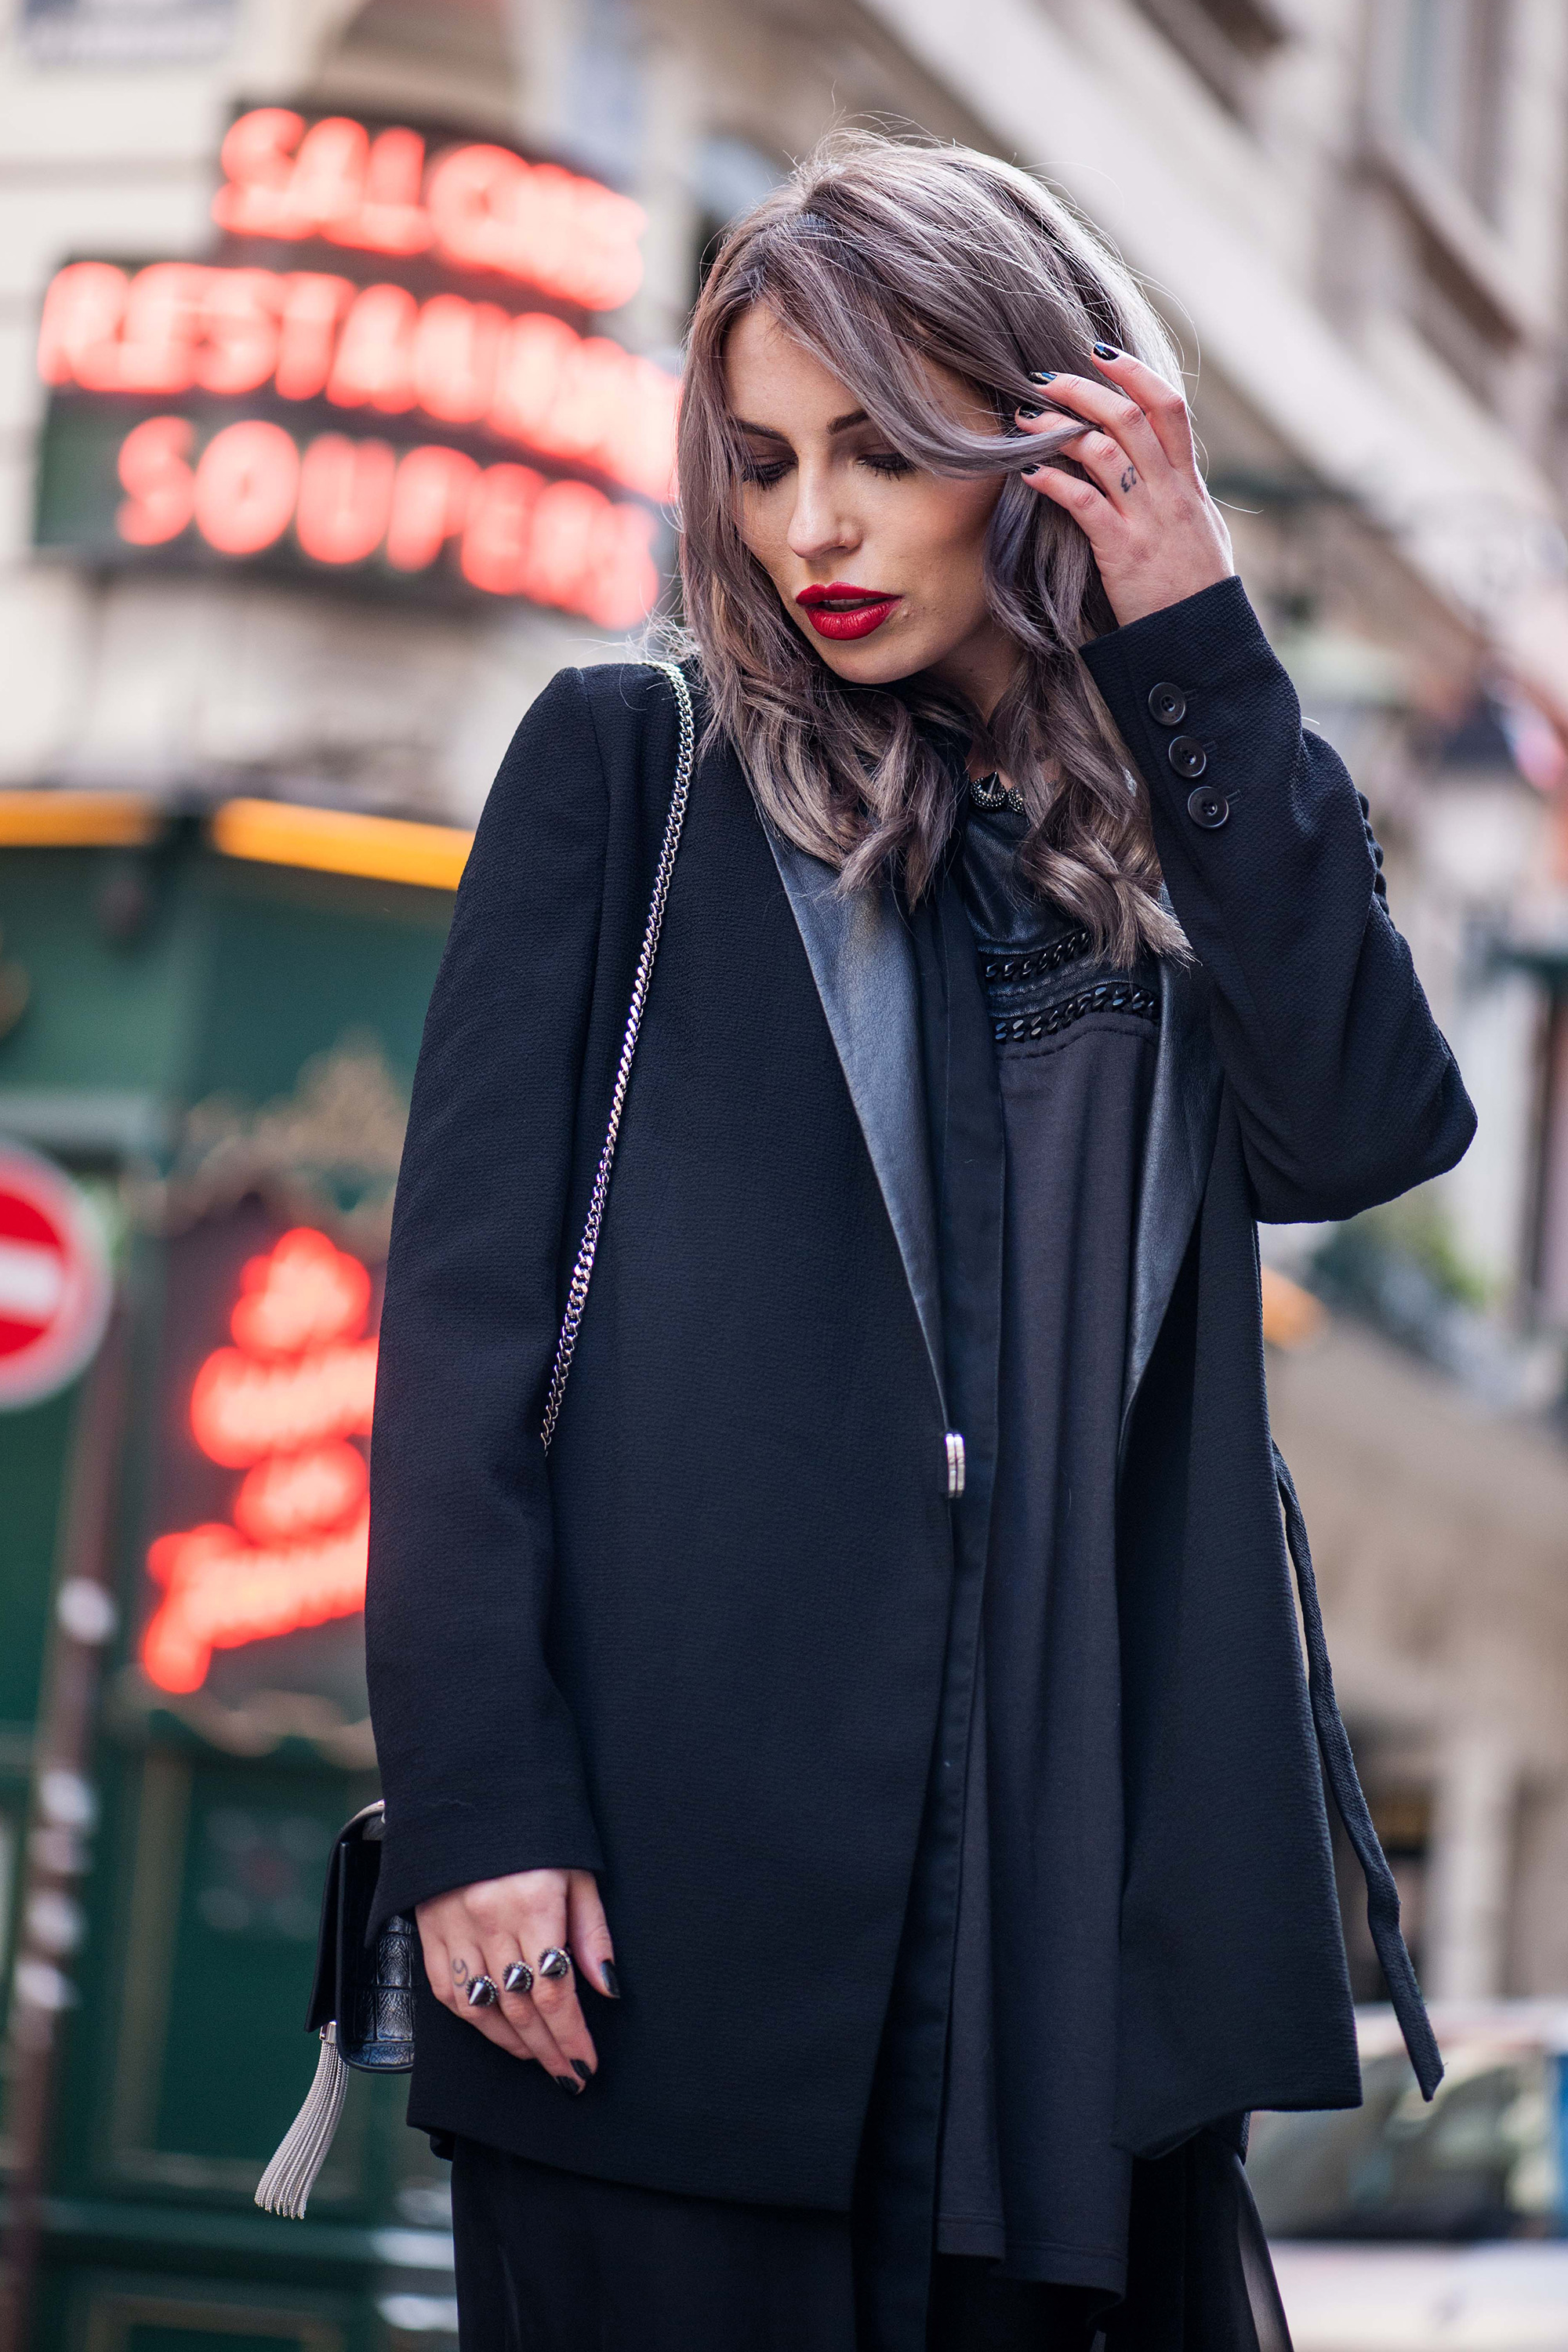 70s-leather-flared-pants-streetstyle-paris-7